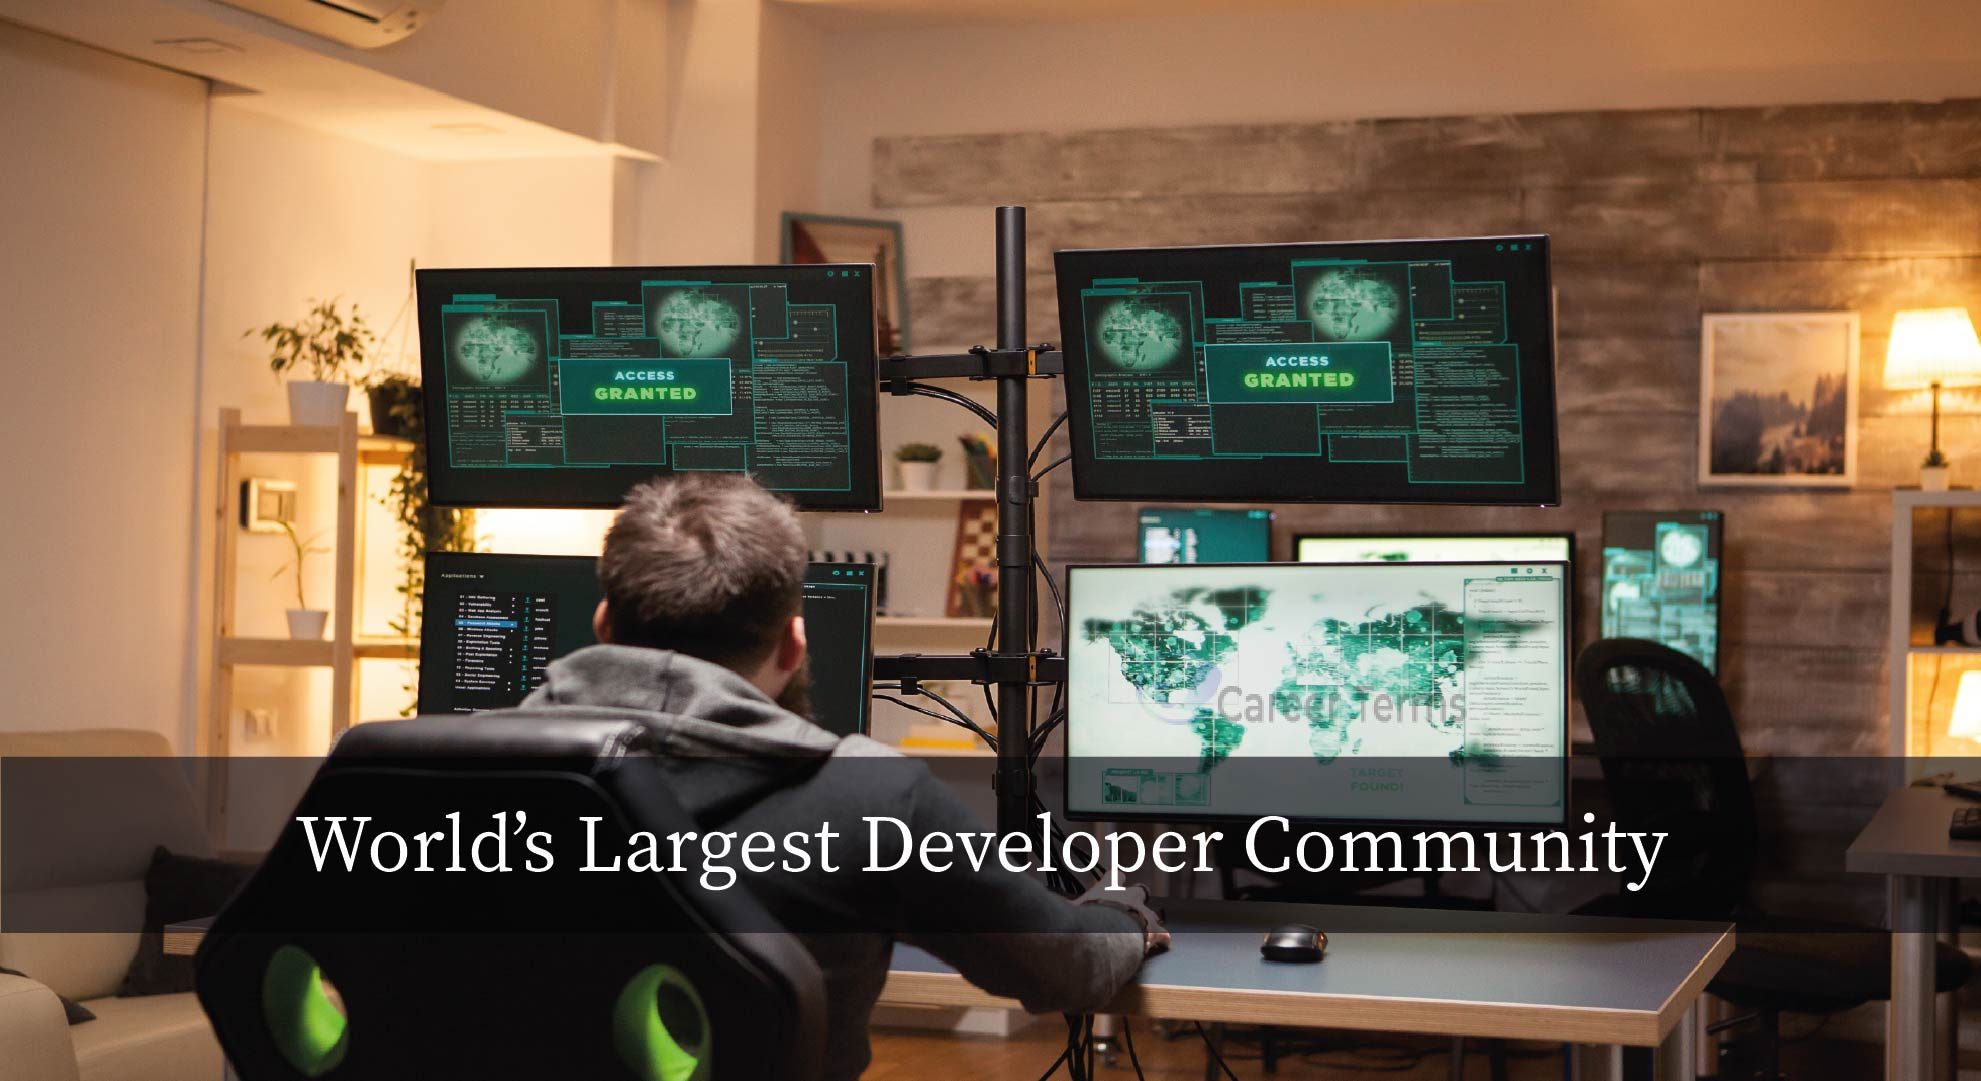 Join the World's Largest Developer Community in 2020